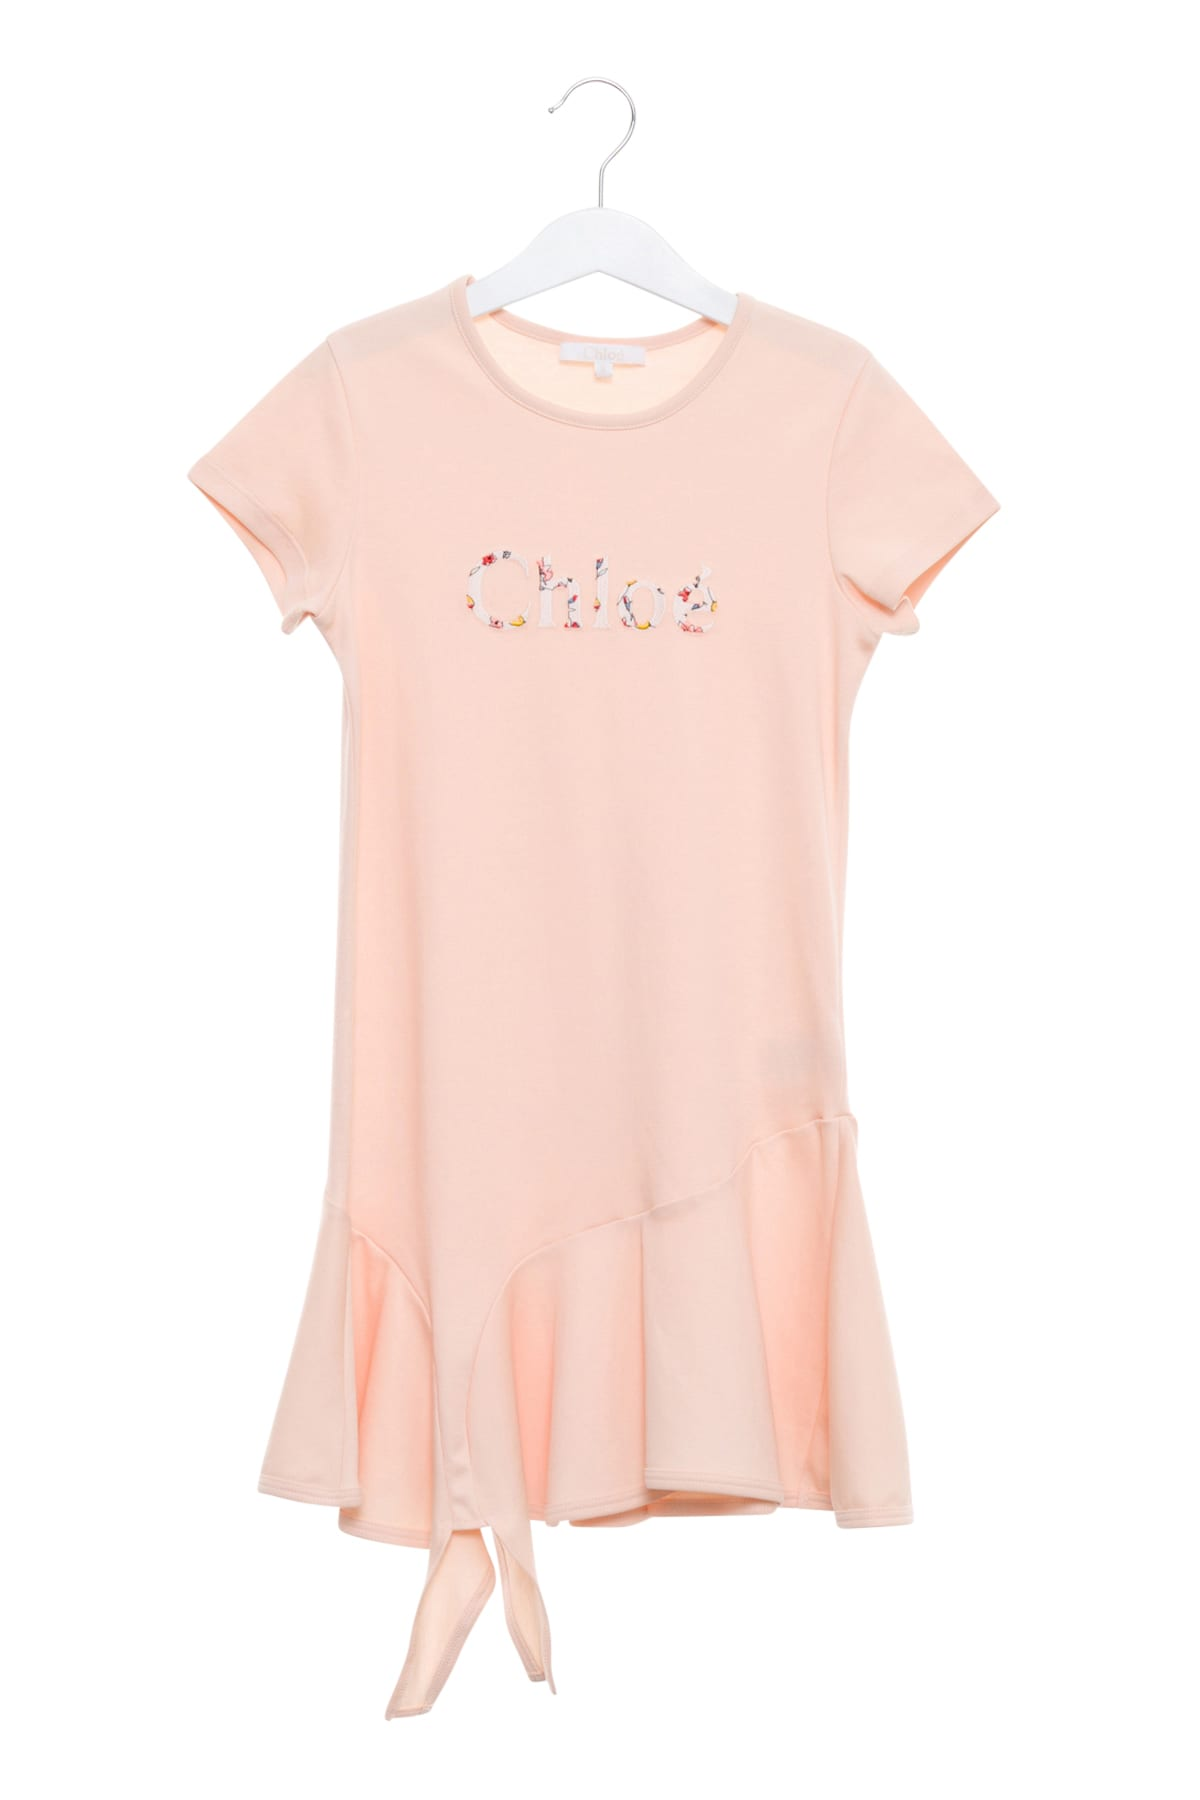 Chloé Embroidered Dress With Ruffled Sleeve